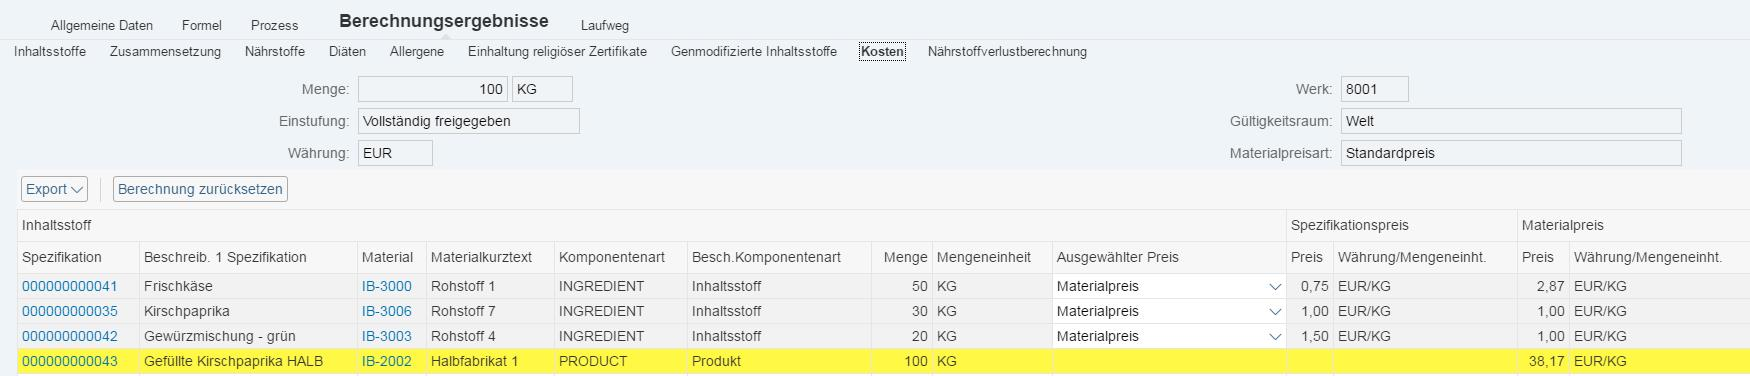 News_Screenshot_Rezepturmanagement_Kostenermittlung im Rezept